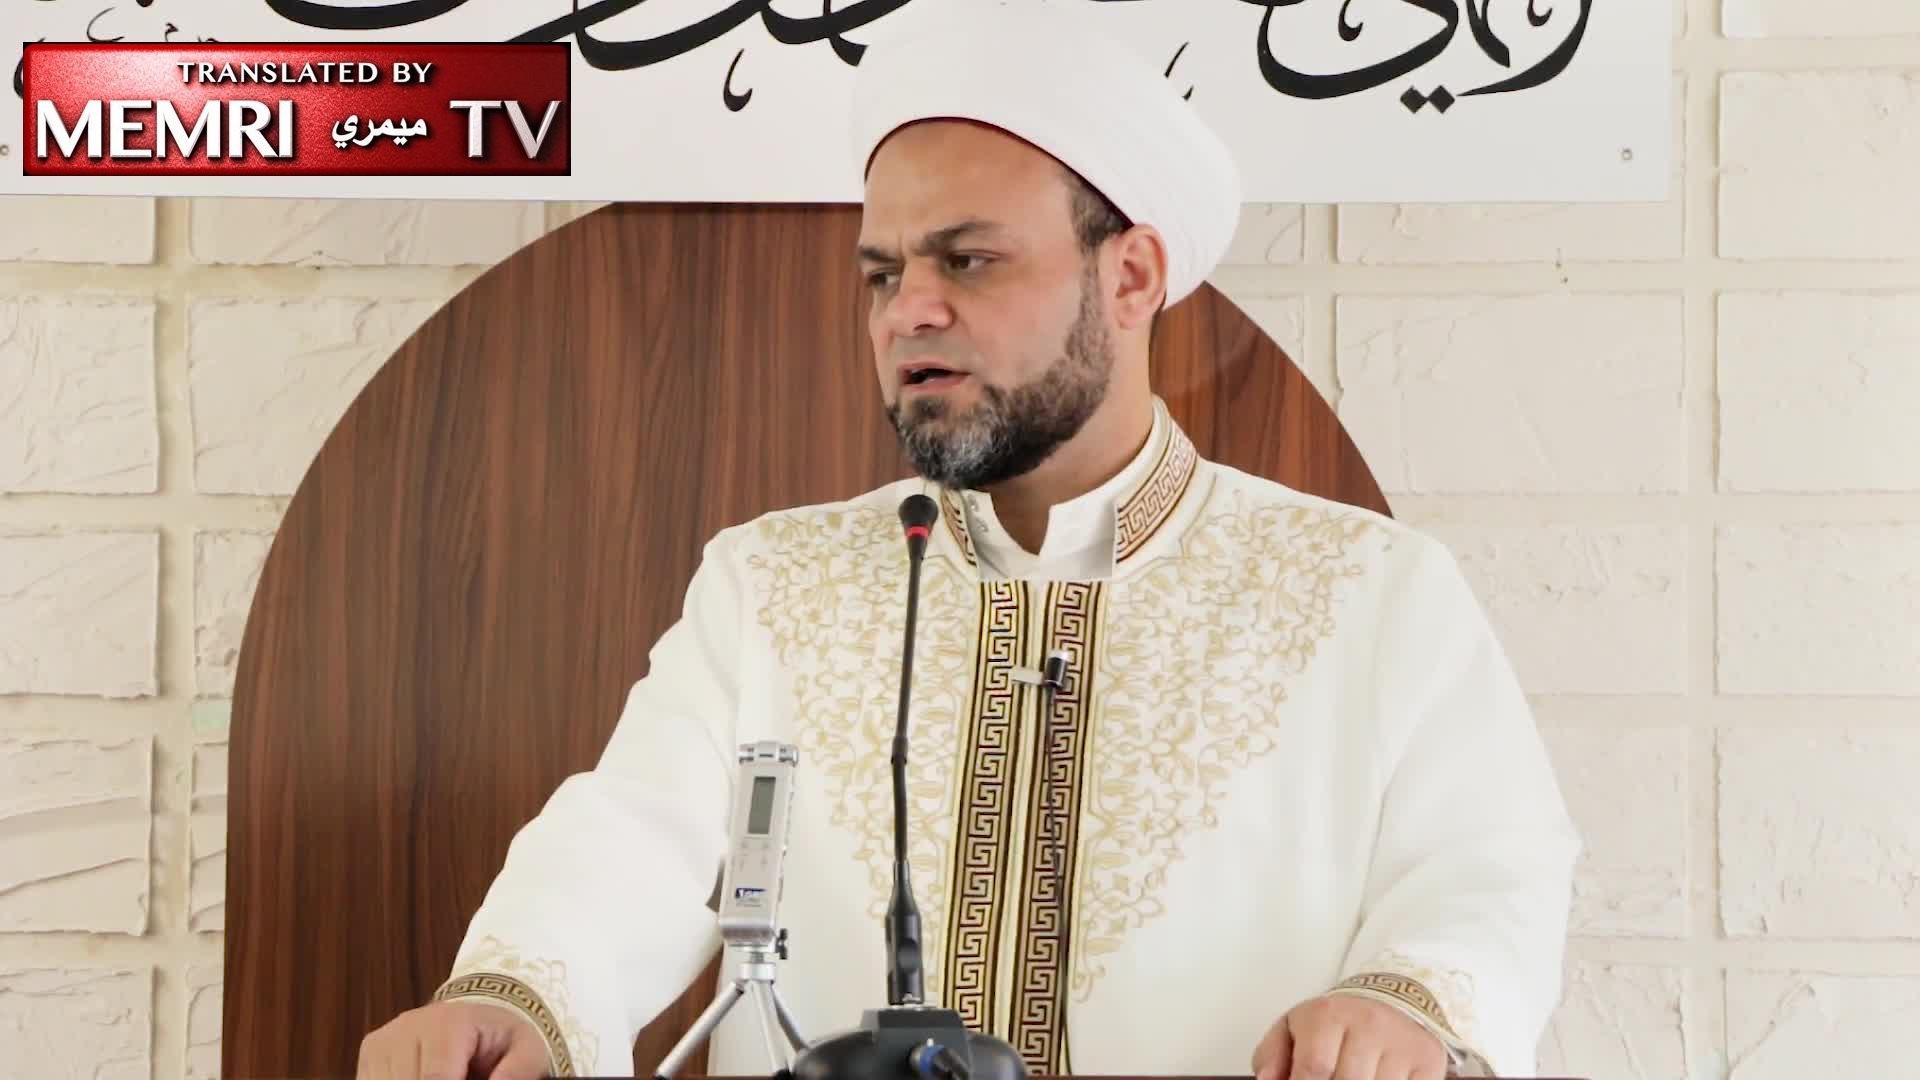 Istanbul Friday Sermon by Syrian Cleric Mohammad Basem Dahman: The U.S. Created ISIS to Distort the Image of Islam